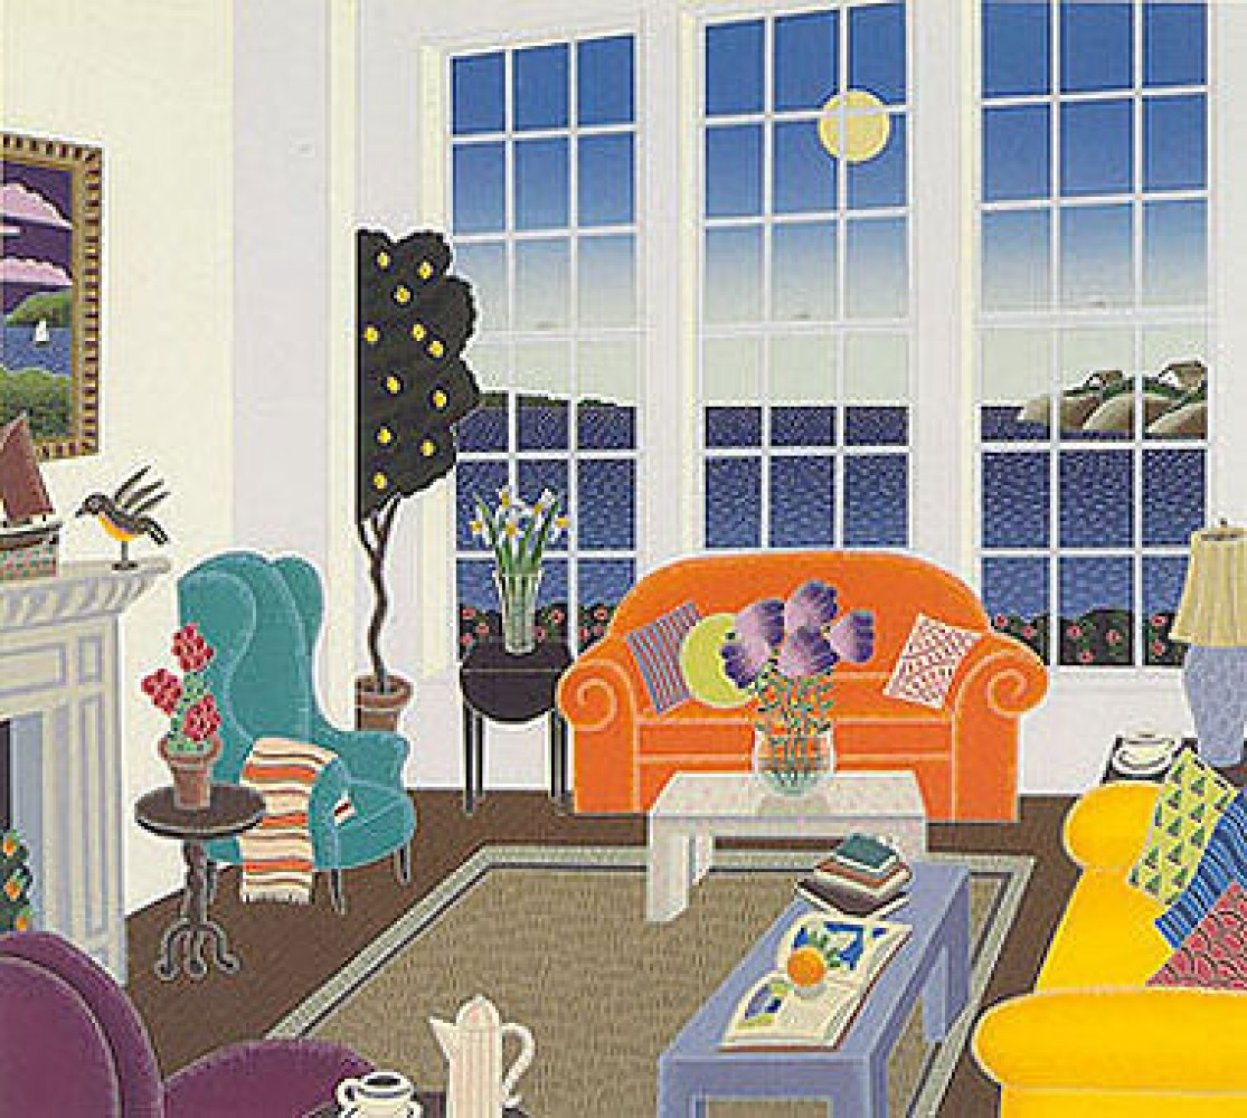 New England Suite of 4 Serigraphs Limited Edition Print by Thomas Frederick McKnight